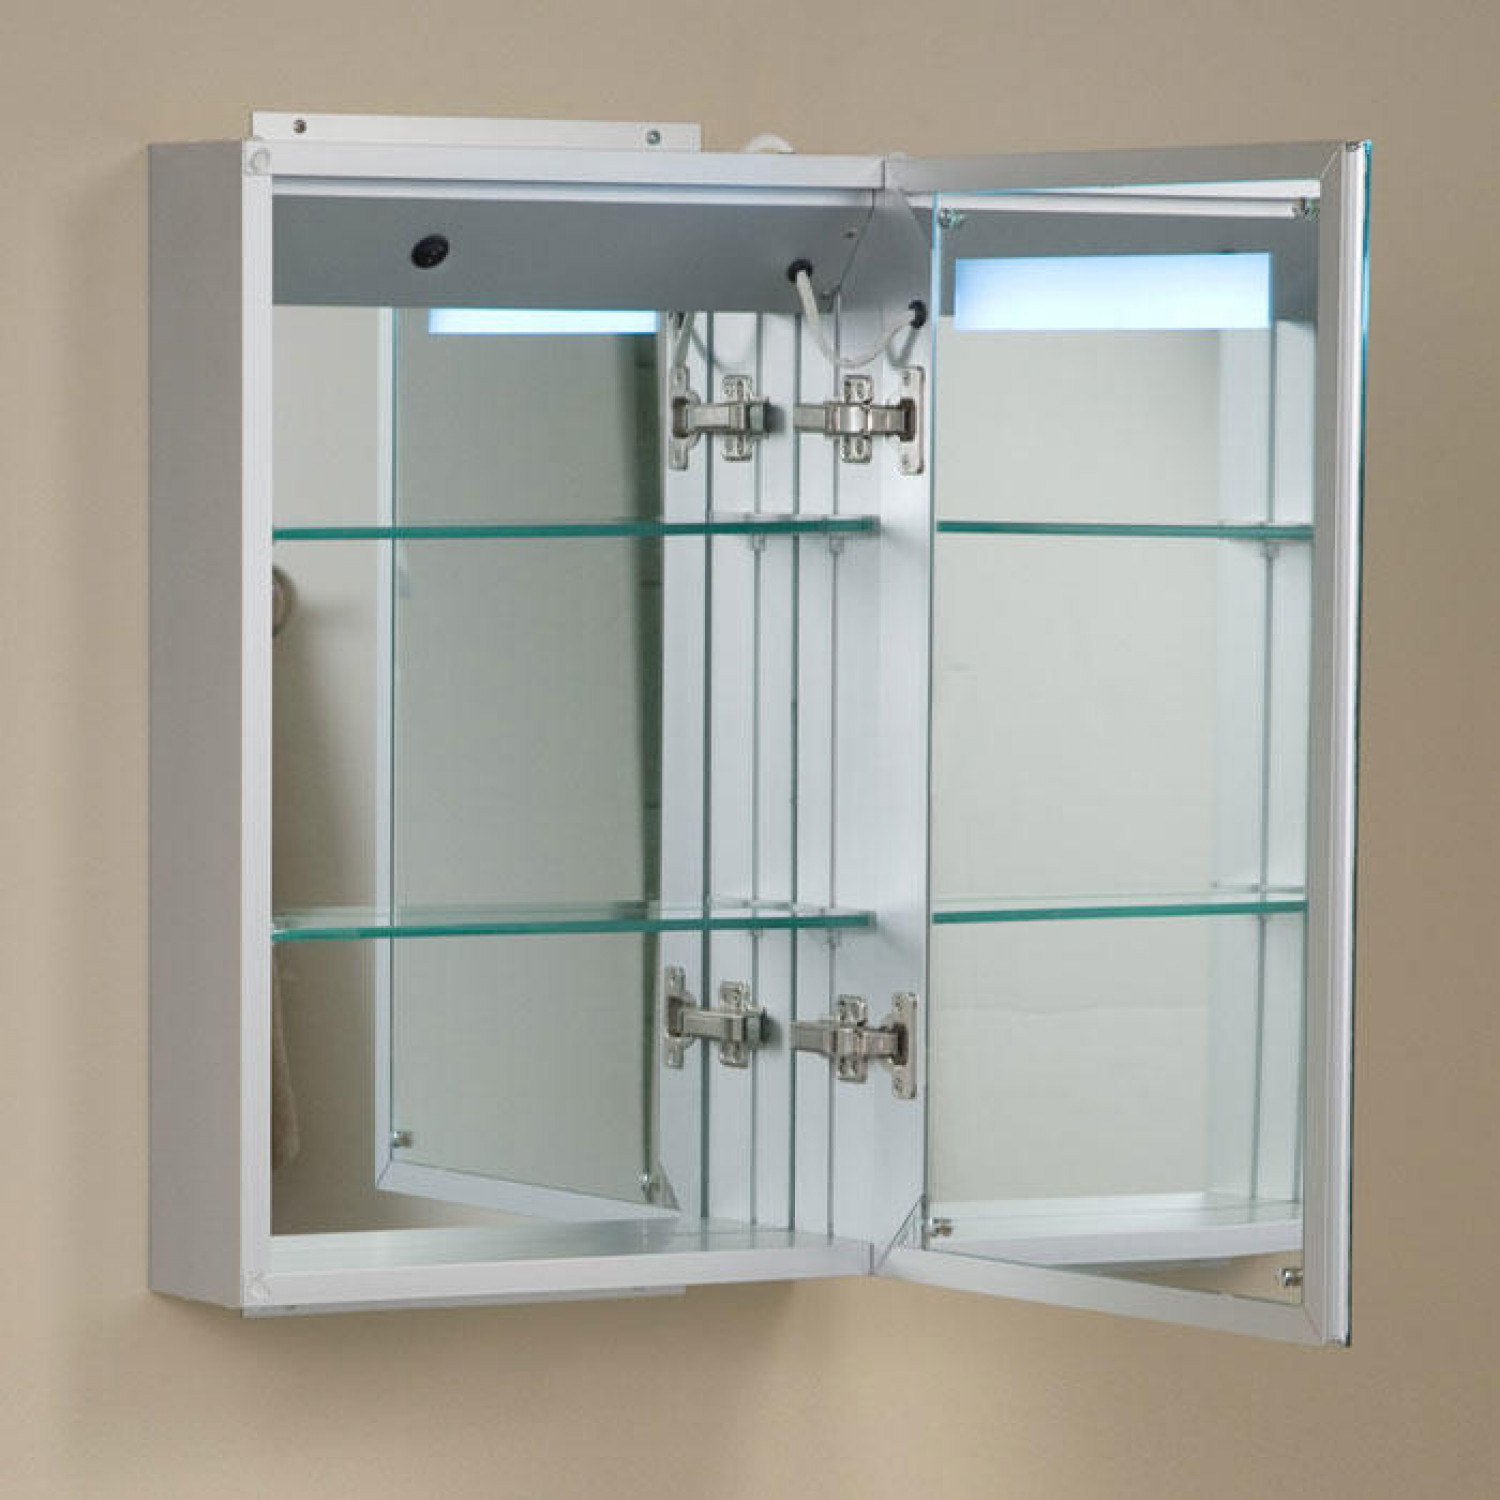 Best ideas about Lighted Medicine Cabinet . Save or Pin Brilliant Aluminum Medicine Cabinet with Lighted Mirror Now.